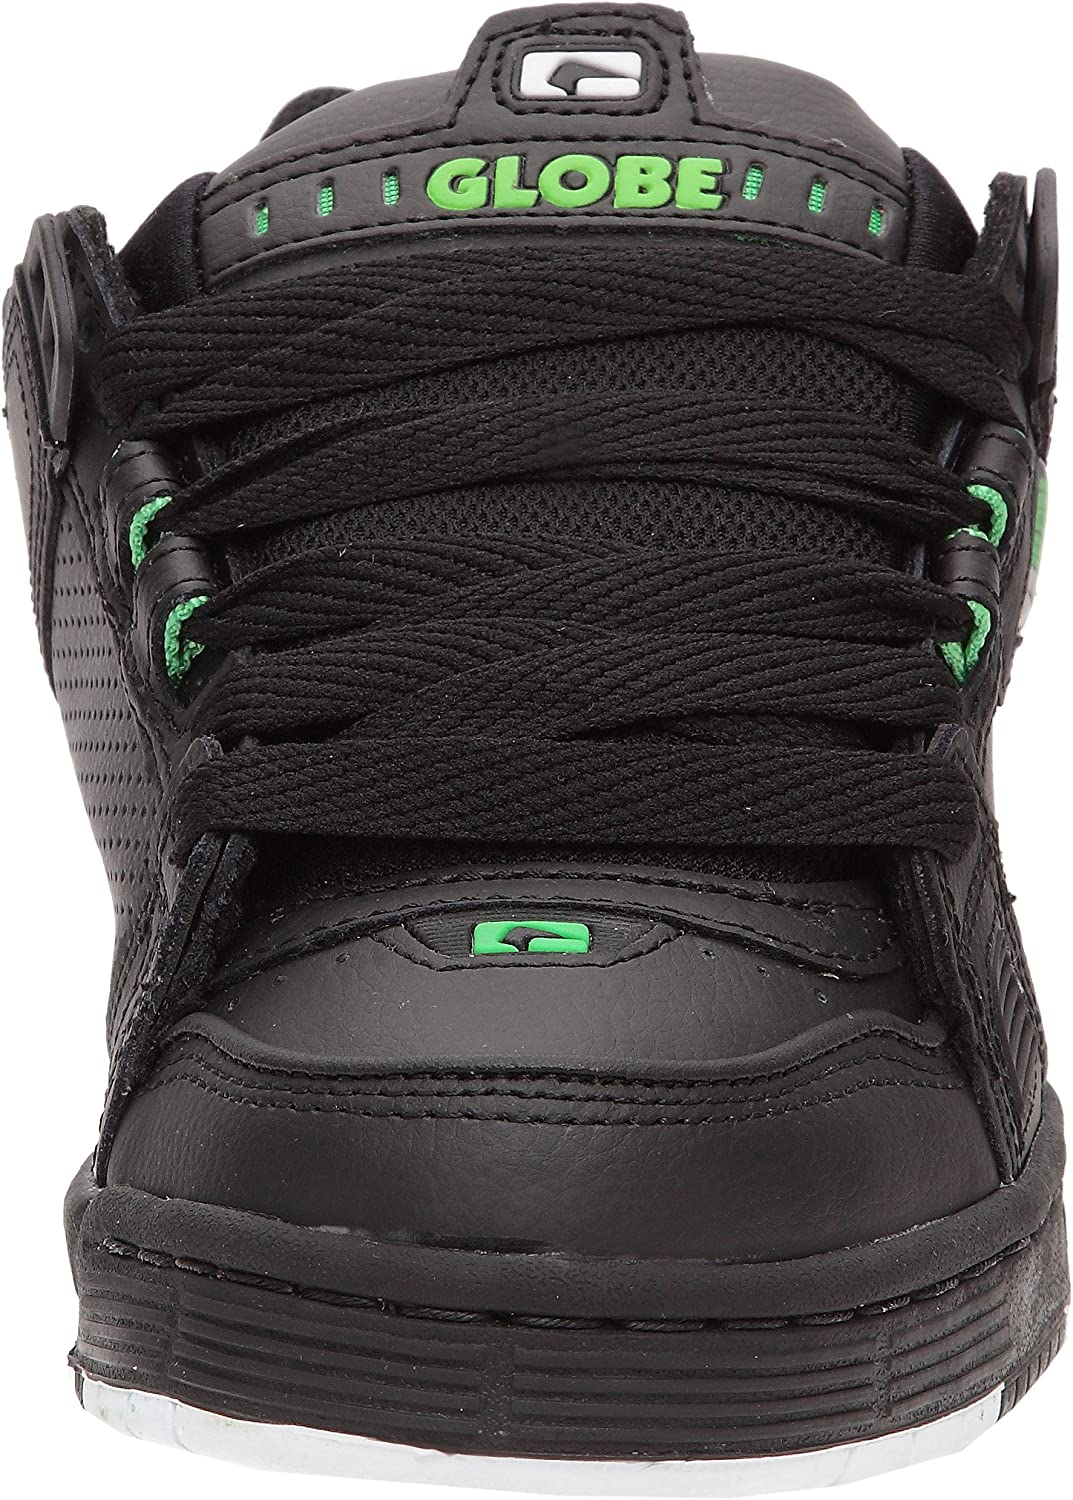 EU 47 US 14 Globe Sabre Skate Shoes Trainers Black Moto Green UK 13